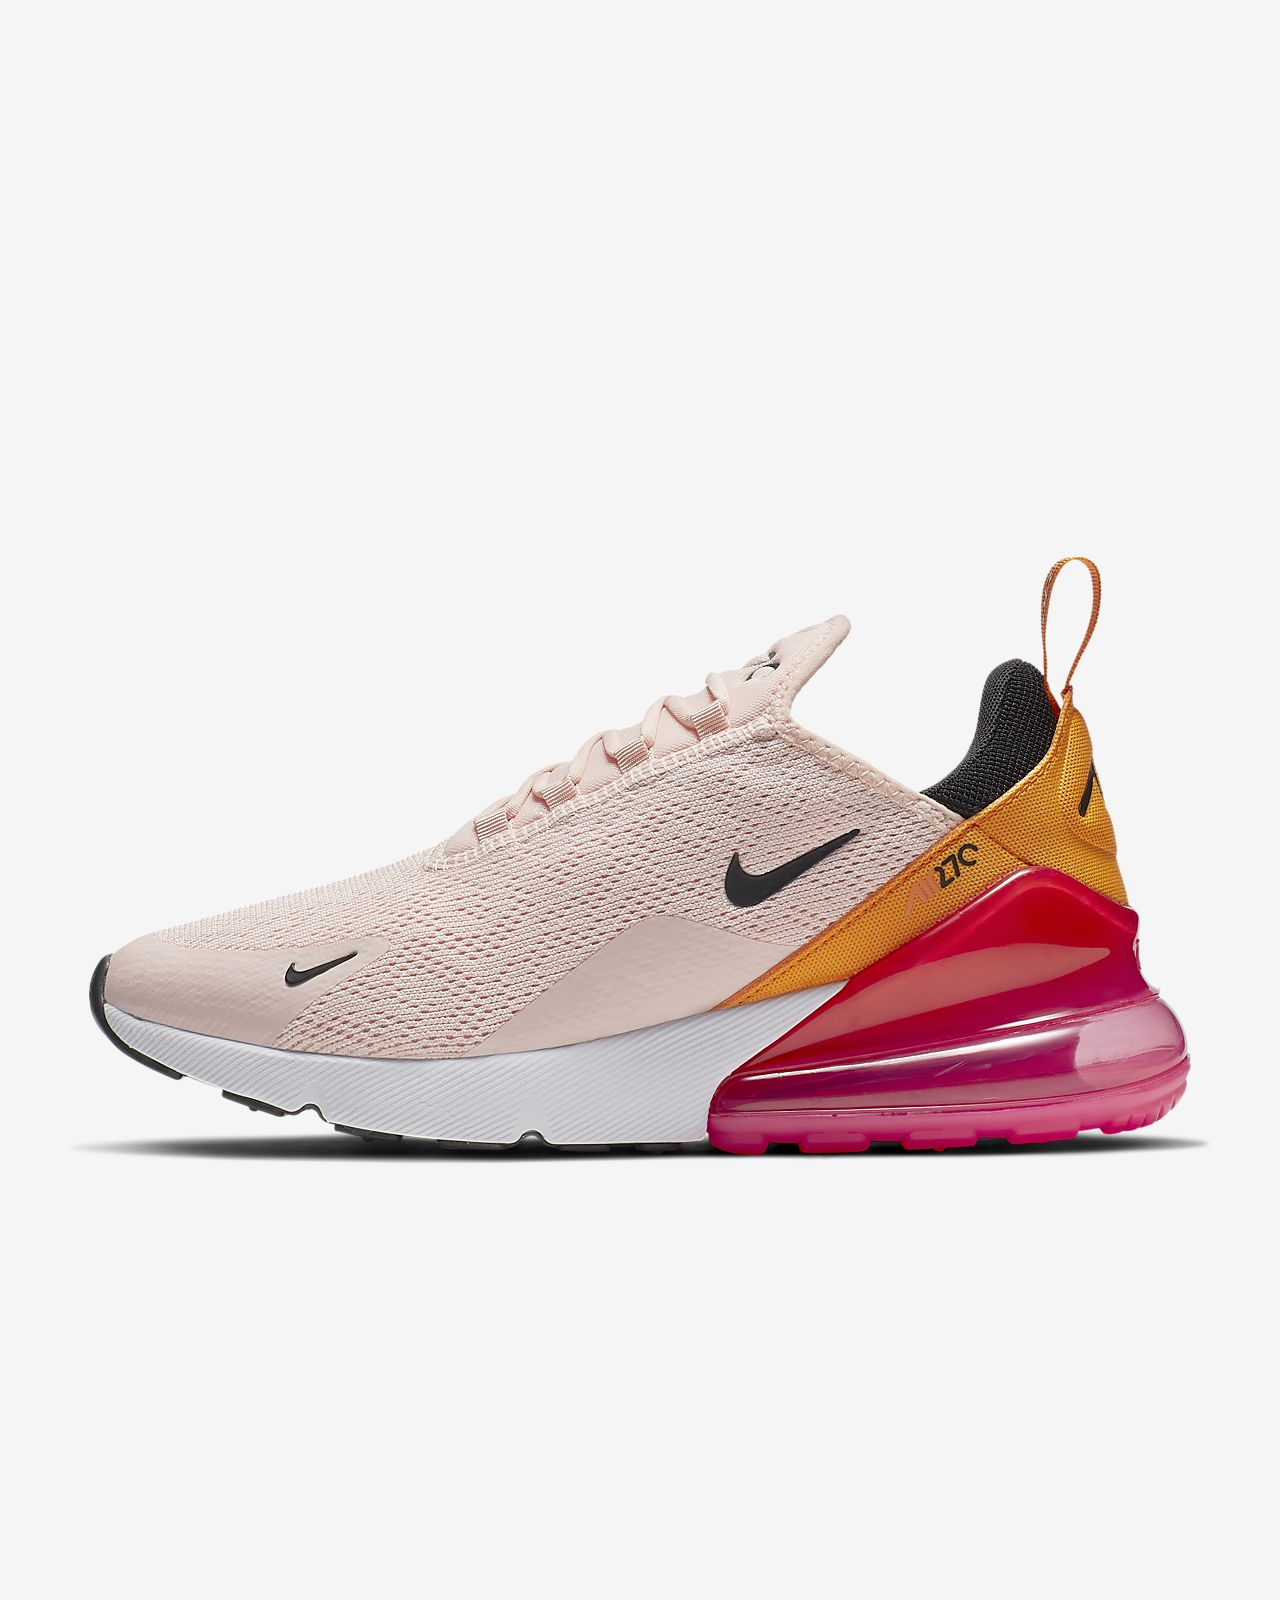 94cd0e630f nike air max promotion | ventes flash